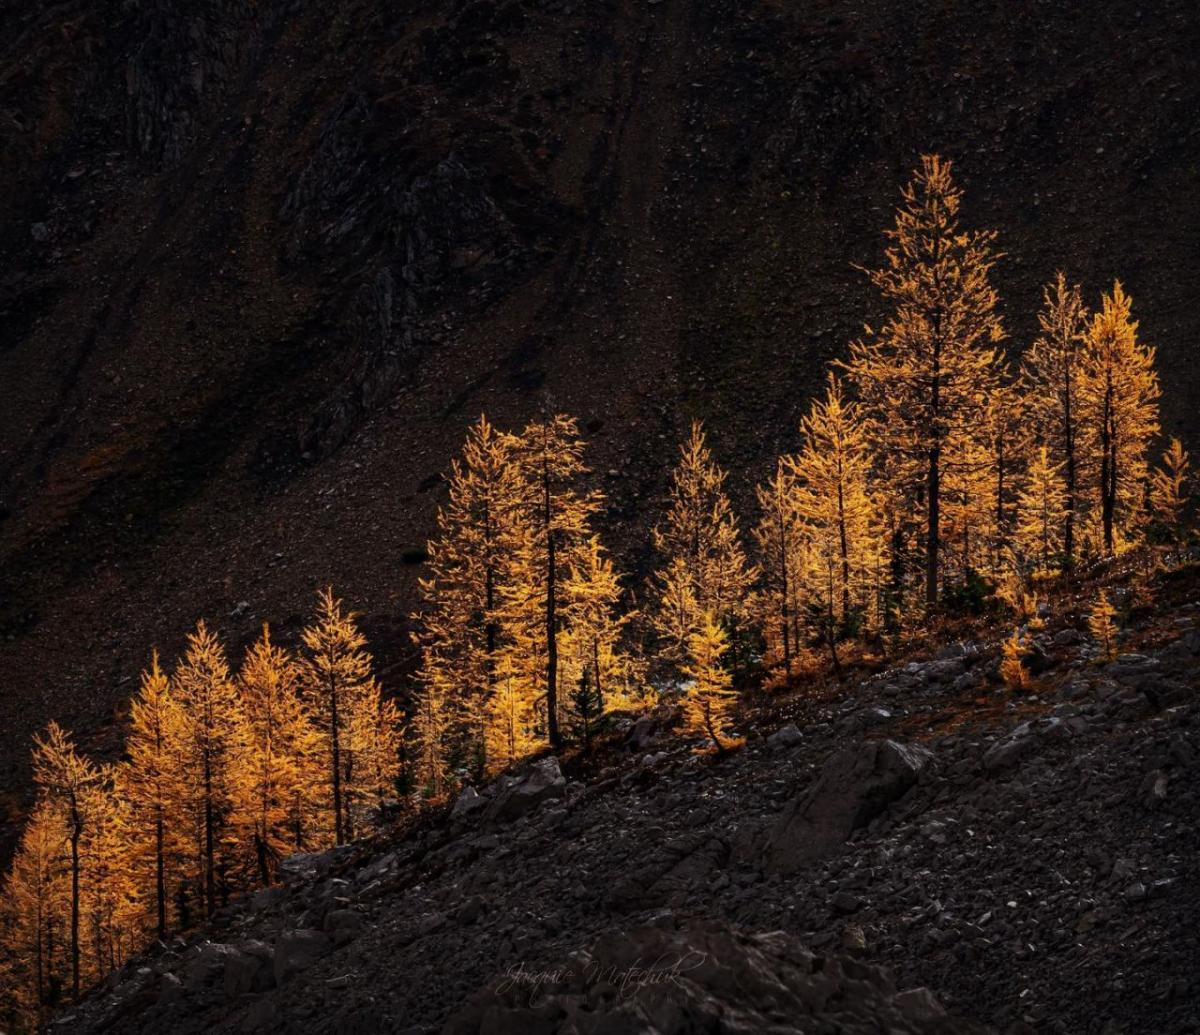 landscape photography golden hues by jacquie matechuk